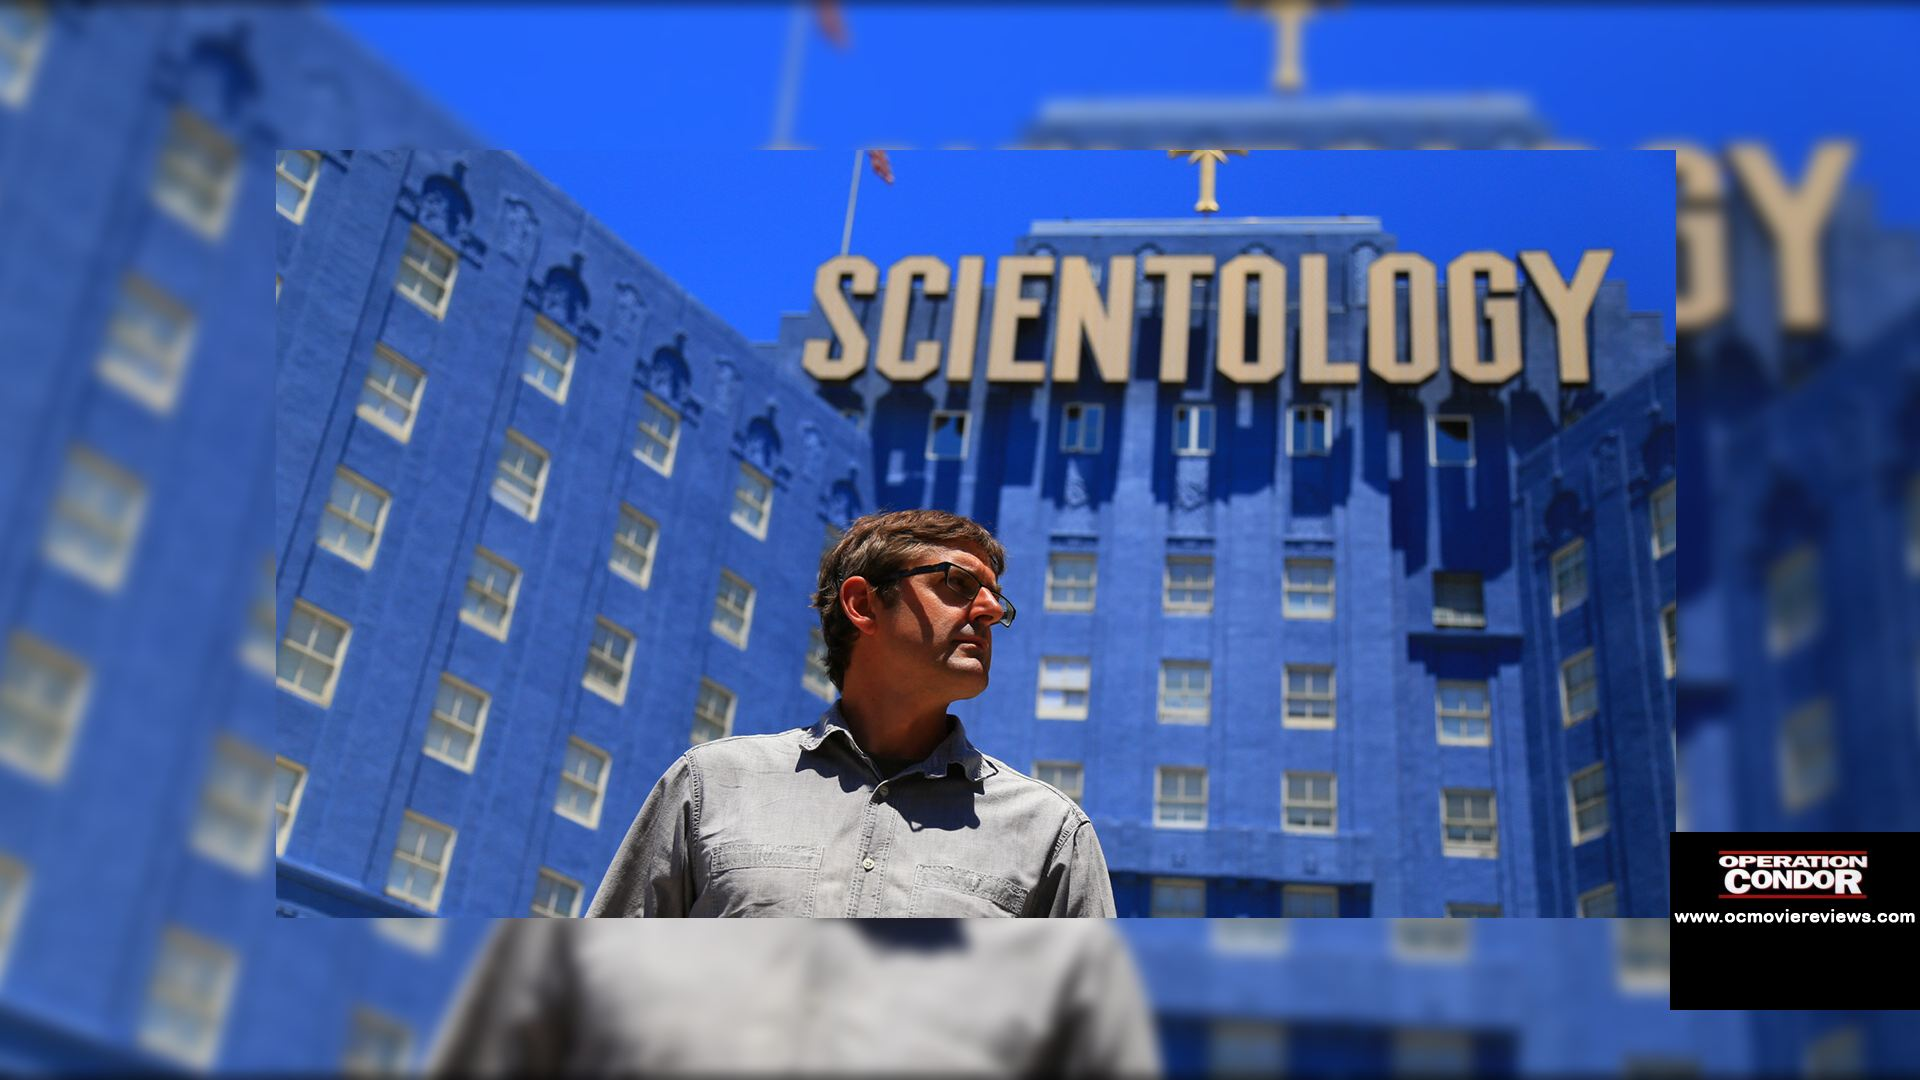 My Scientology Movie Review - OC Movie Reviews - Movie Reviews, Movie News, Documentary Reviews, Short Films, Short Film Reviews, Trailers, Movie Trailers, Interviews, film reviews, film news, hollywood, indie films, documentaries